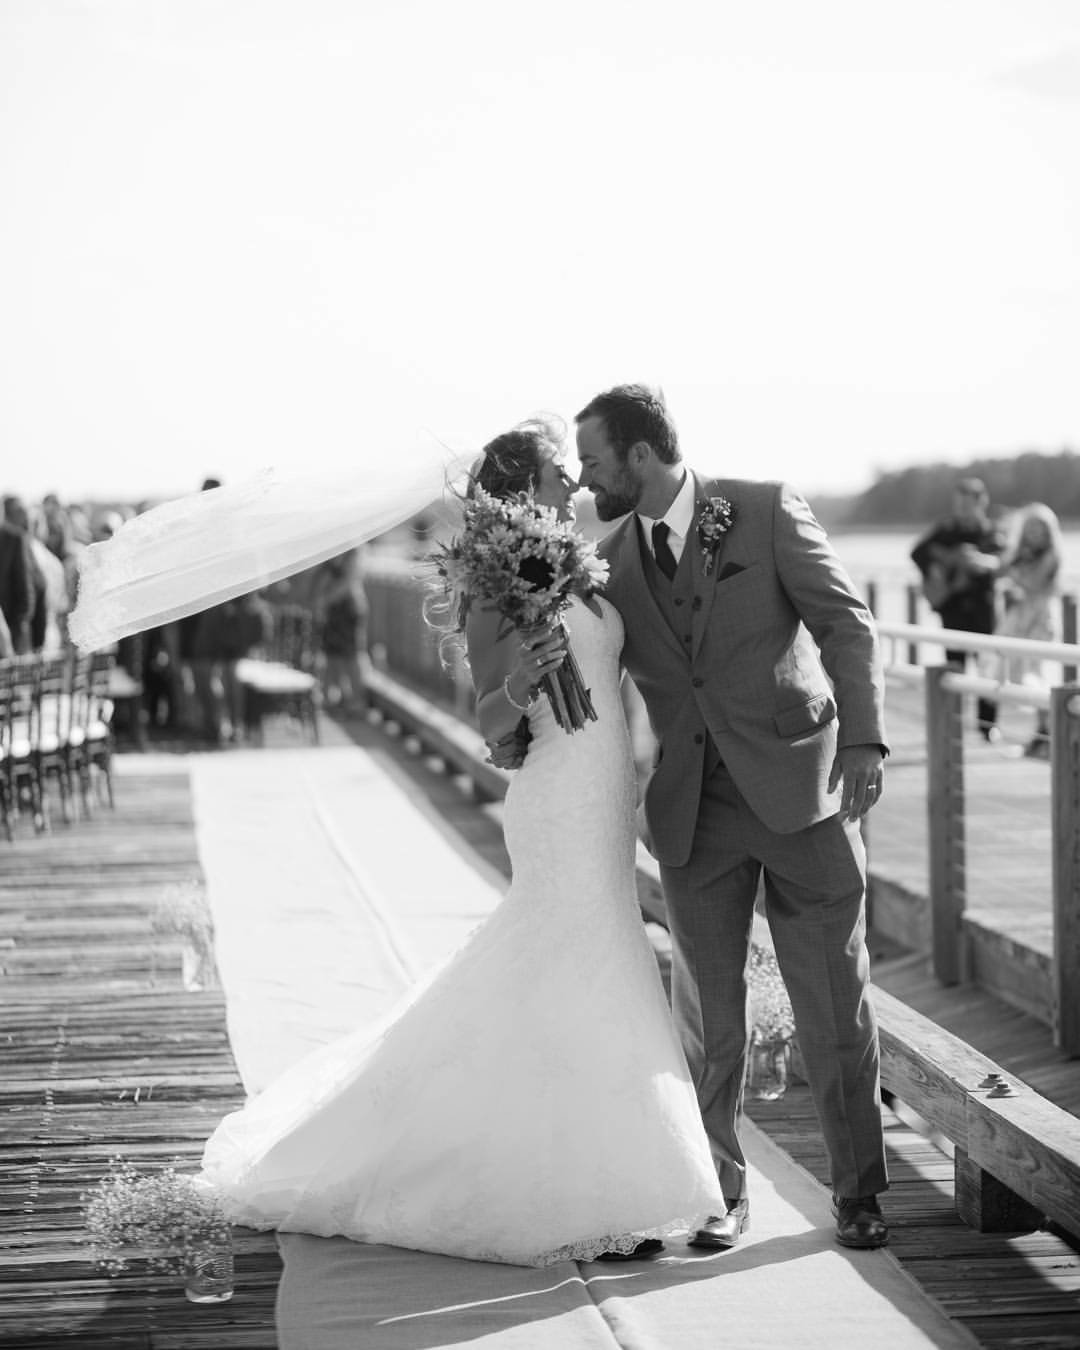 Wilmington Wedding Photographer | Destination Wedding Photo and Video